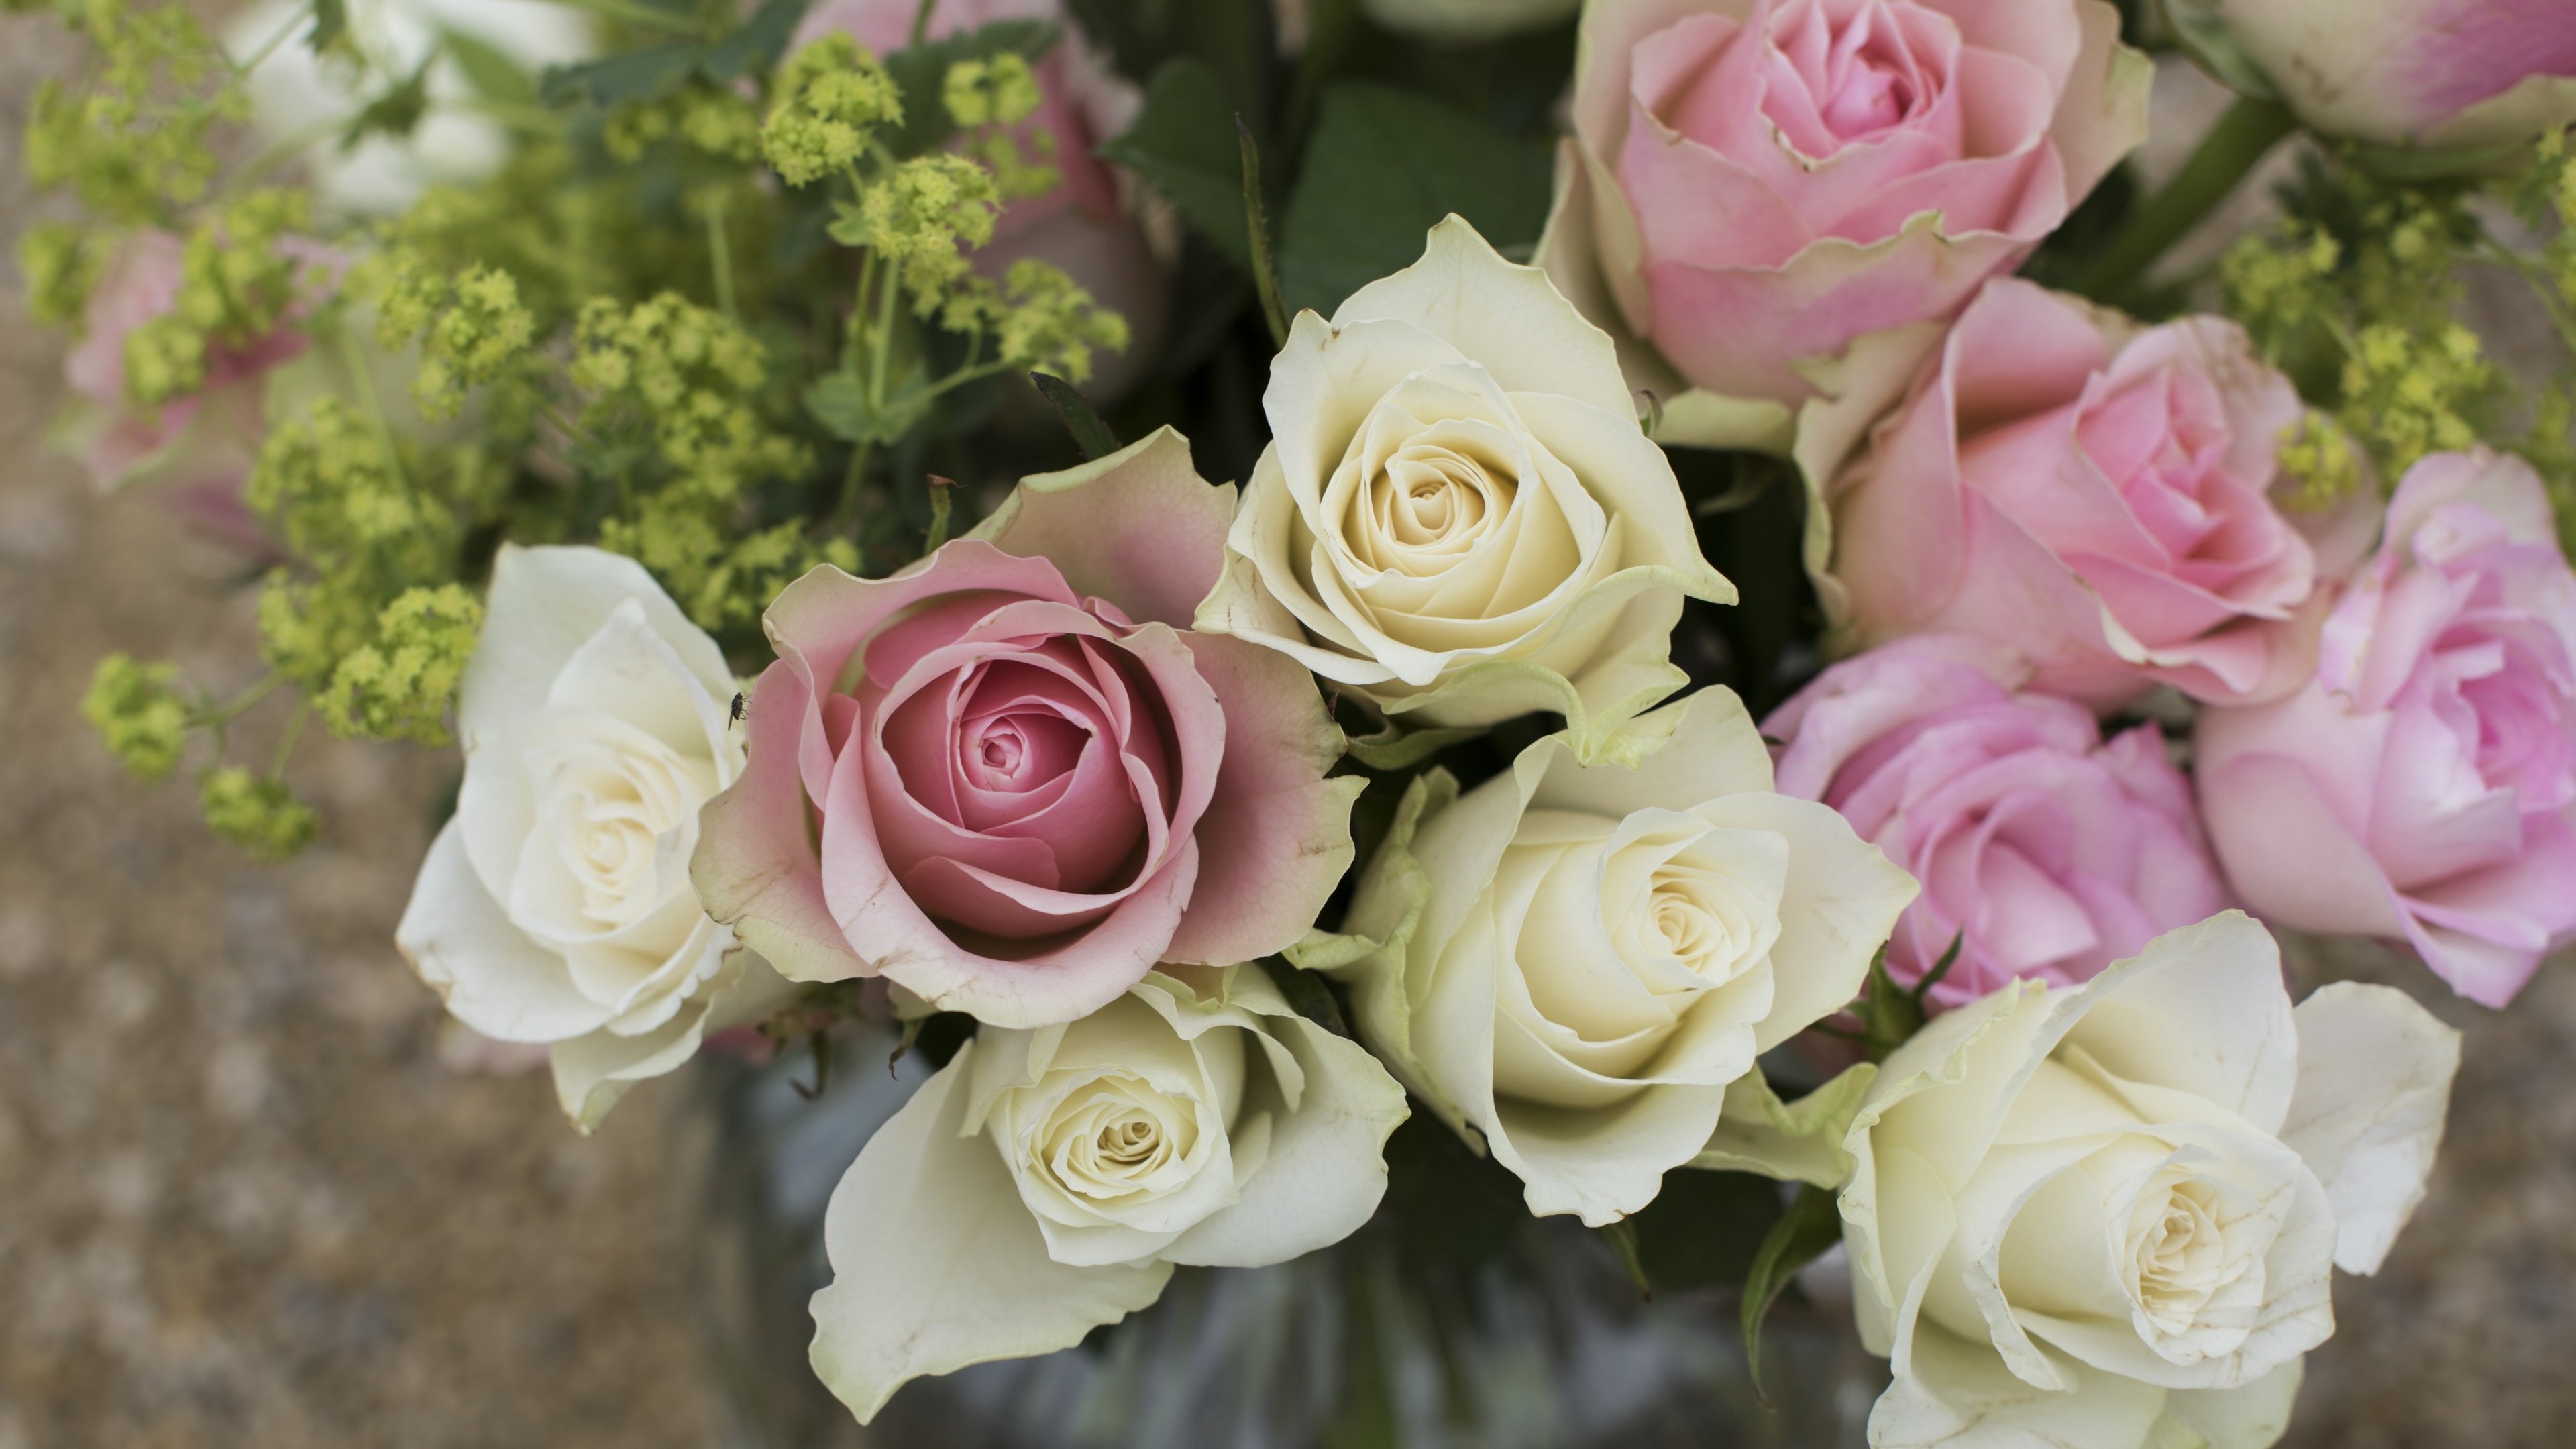 pink & white roses in a vase wallpaper - mobile & desktop background